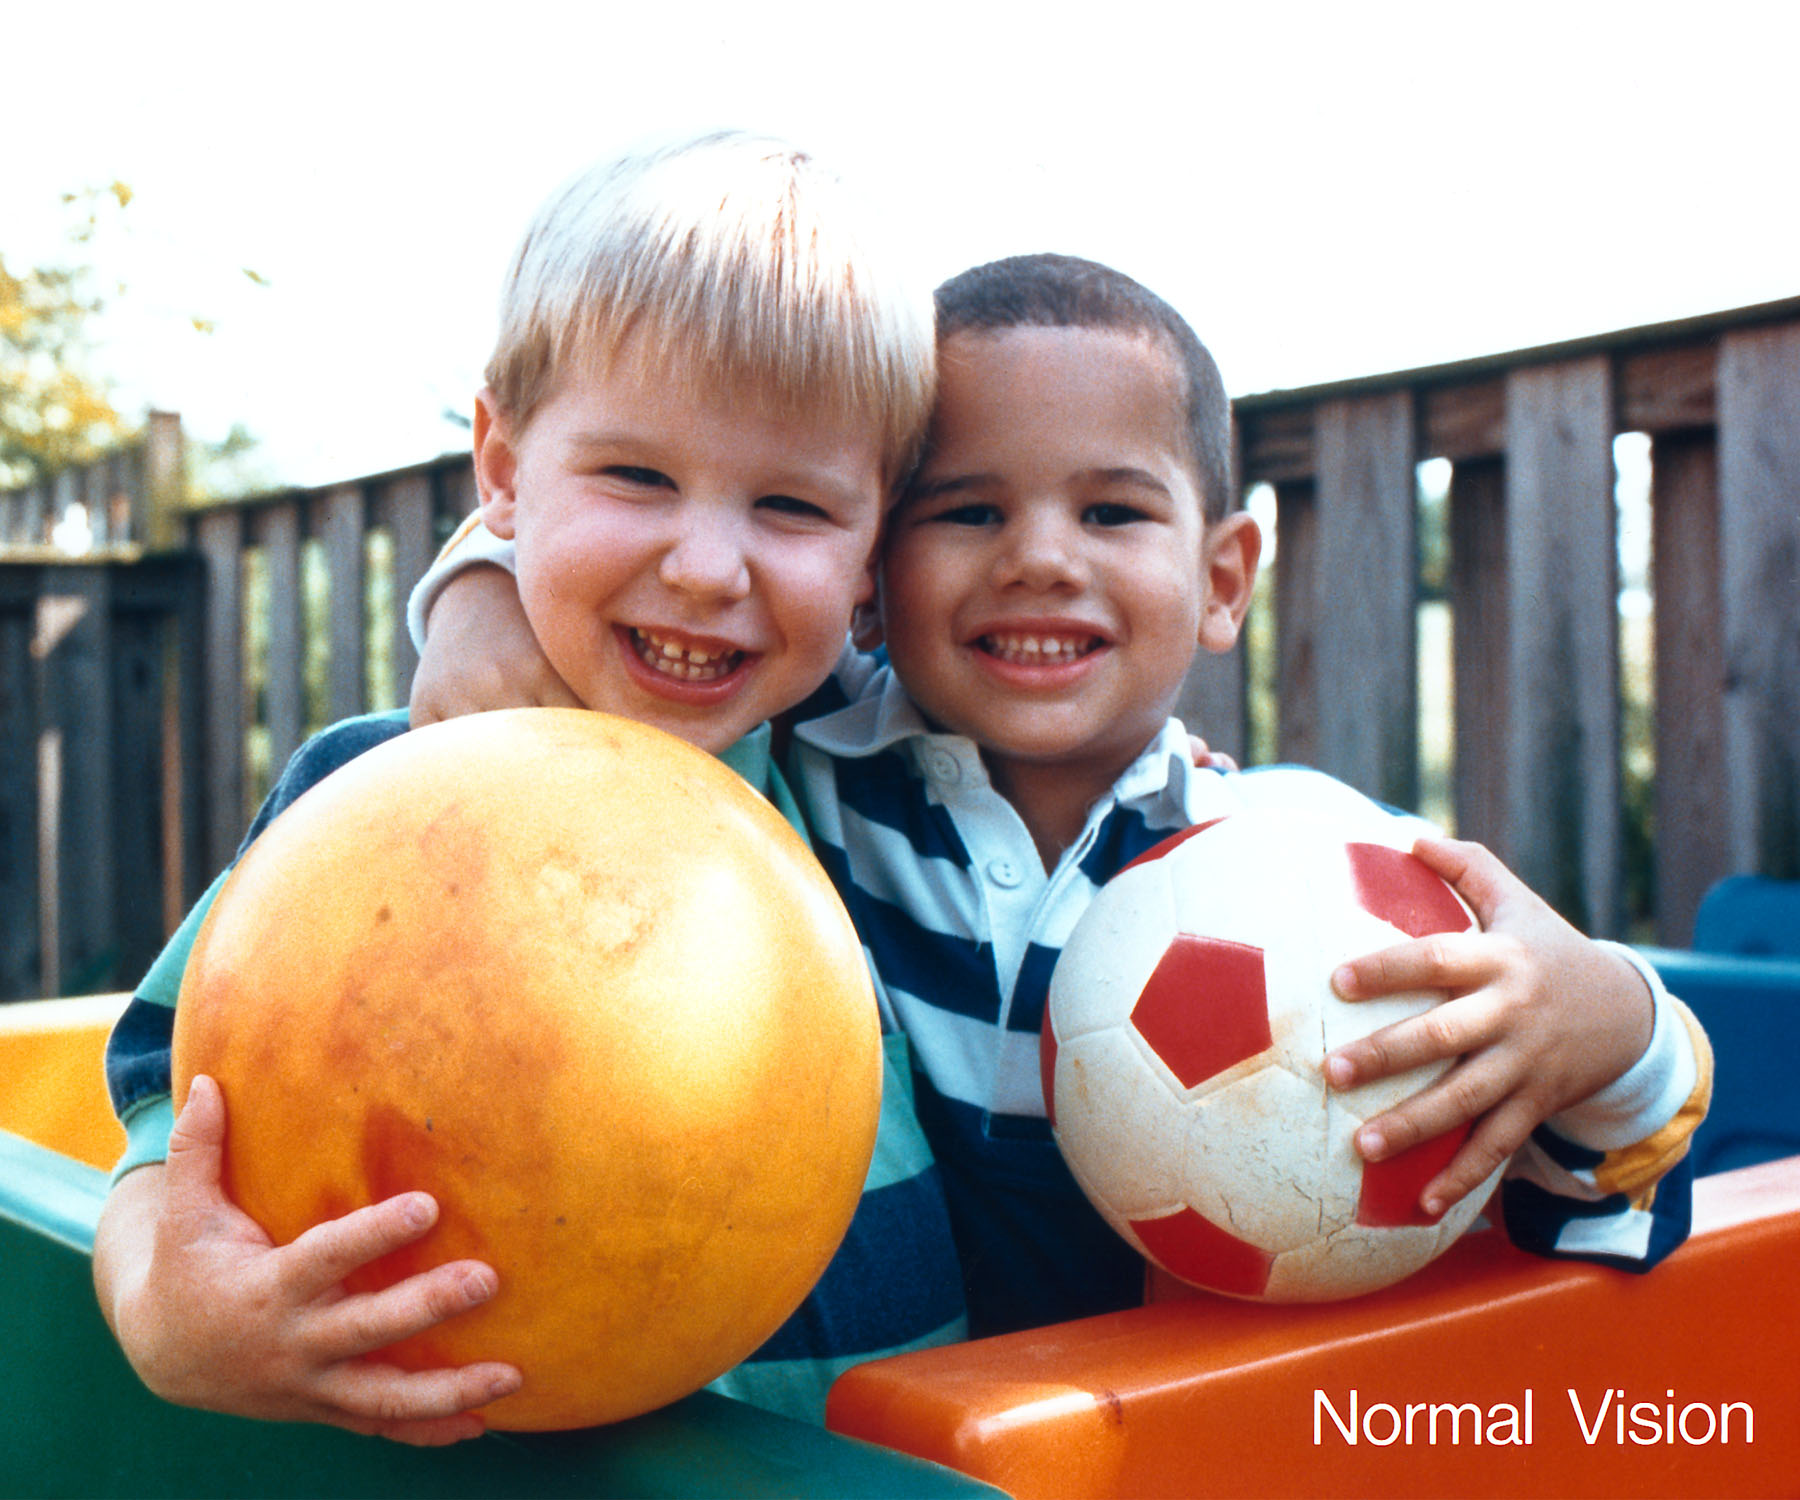 Tanım human eyesight two children and ball normal vision color hi res